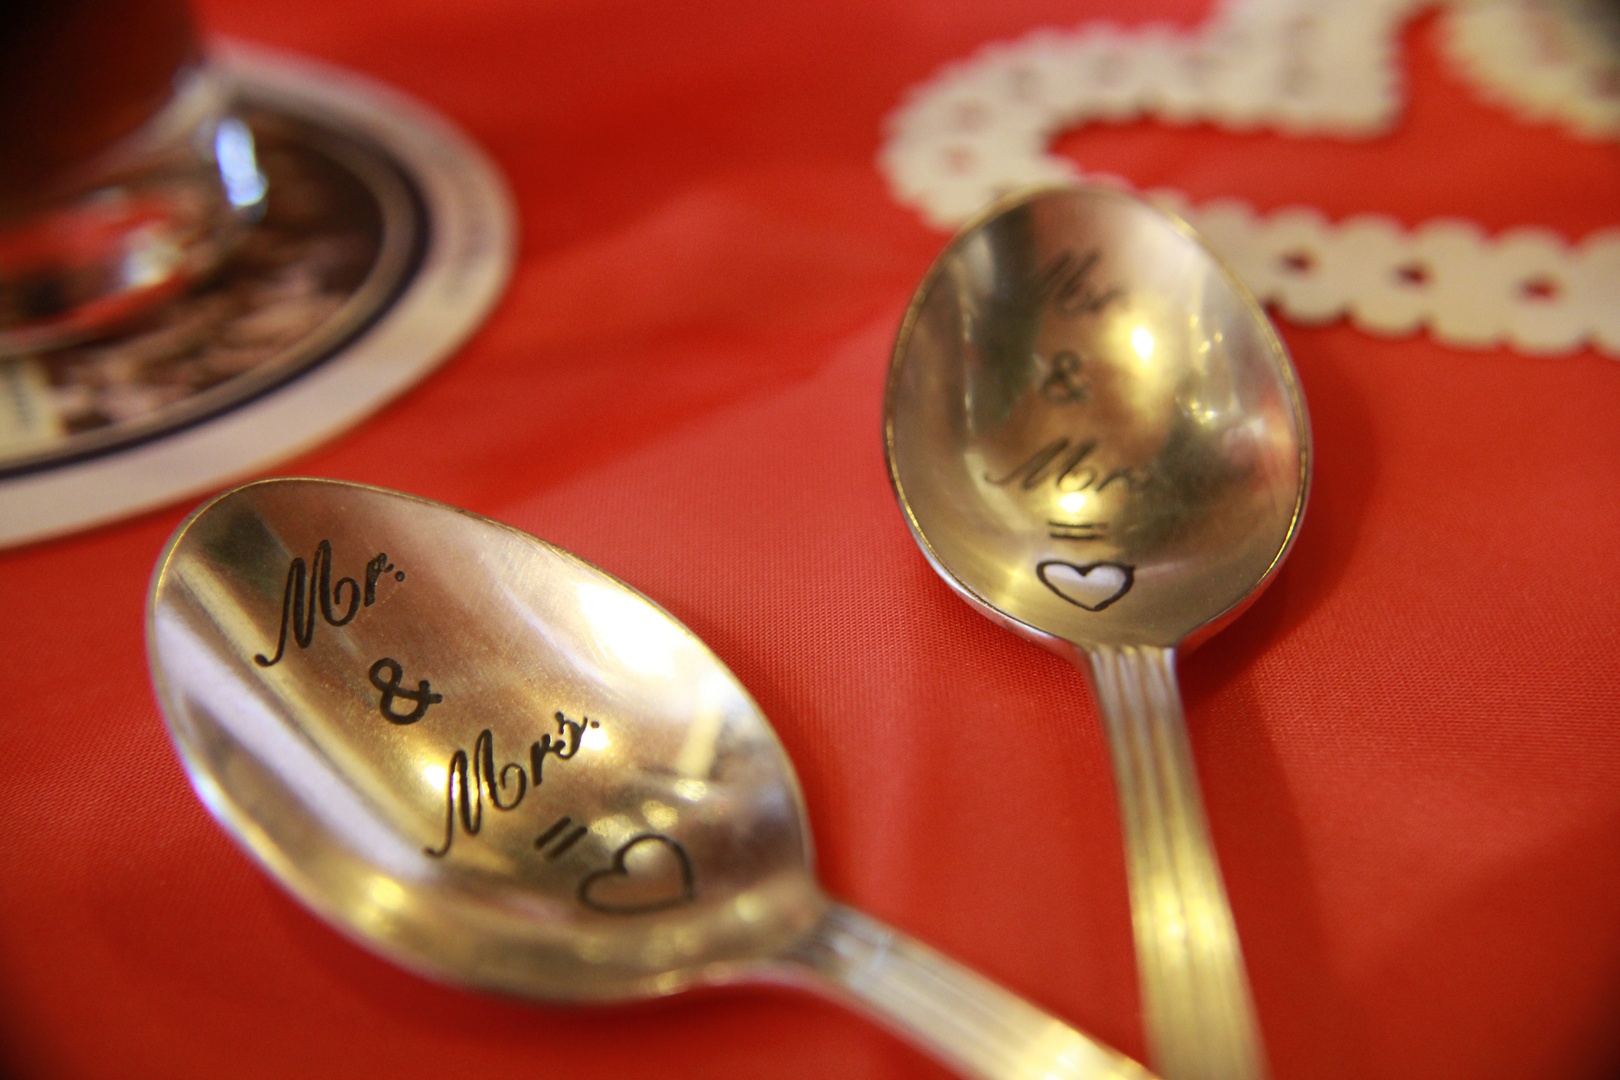 Spoon Mr. and Mrs.